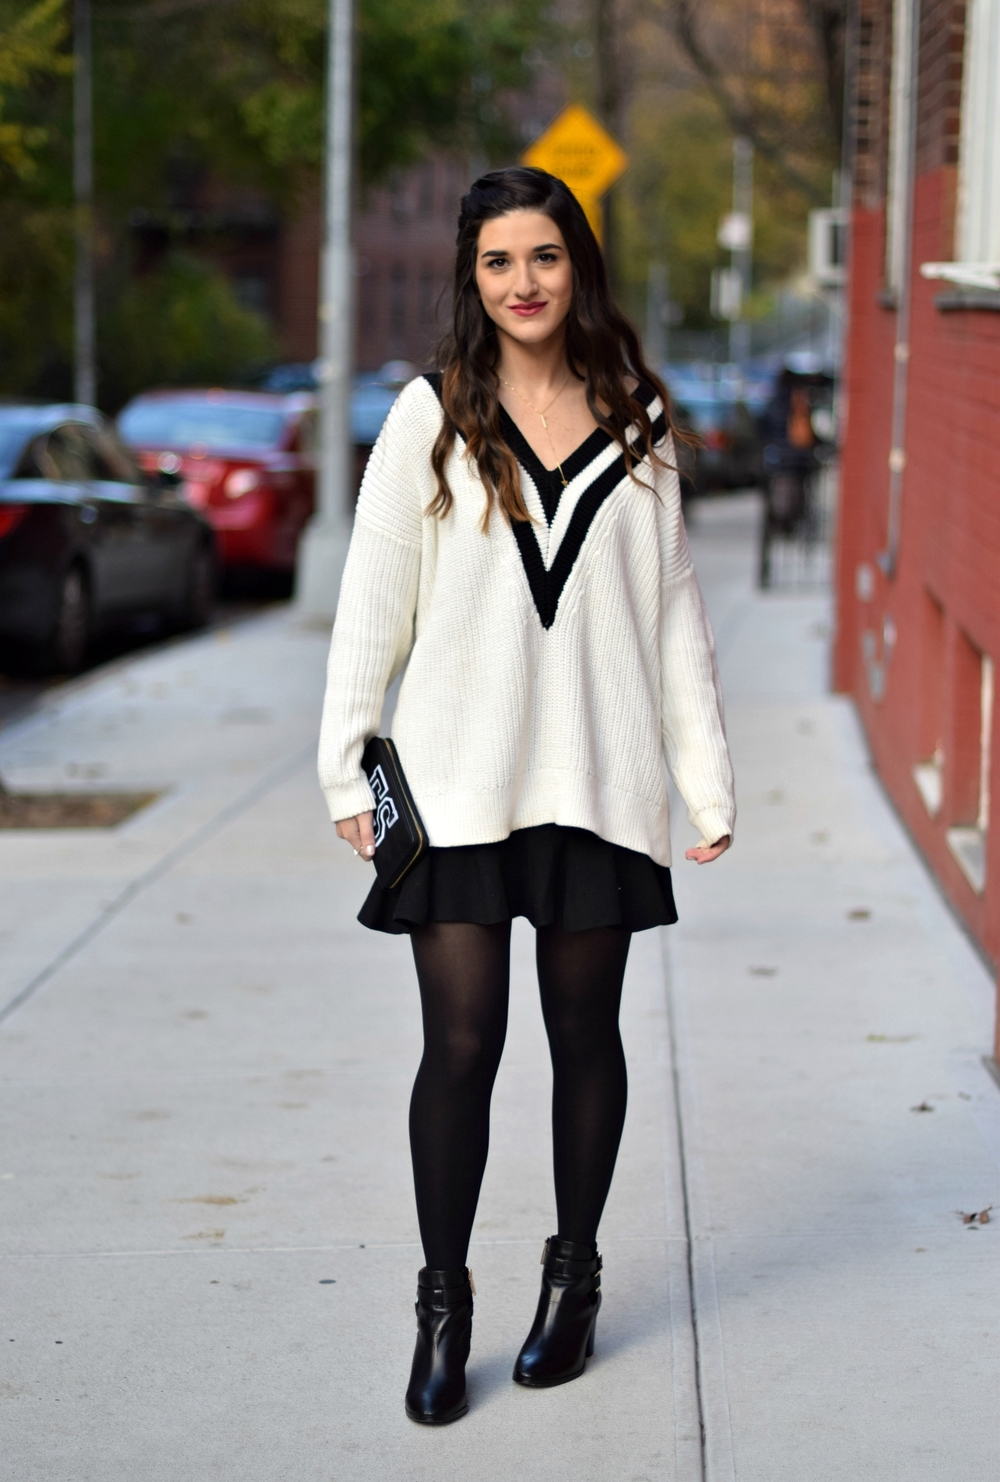 Chunky Varsity Knit Fur Stole Louboutins & Love Fashion Blog Esther Santer NYC Street Style Blogger Sweater Girl Women Photoshoot Model Shoes Black Booties Louise et Cie Nordstrom Hair Swag H&M Mini Skirt Outfit OOTD Neutral Tights Winter Wear Shop.jpg